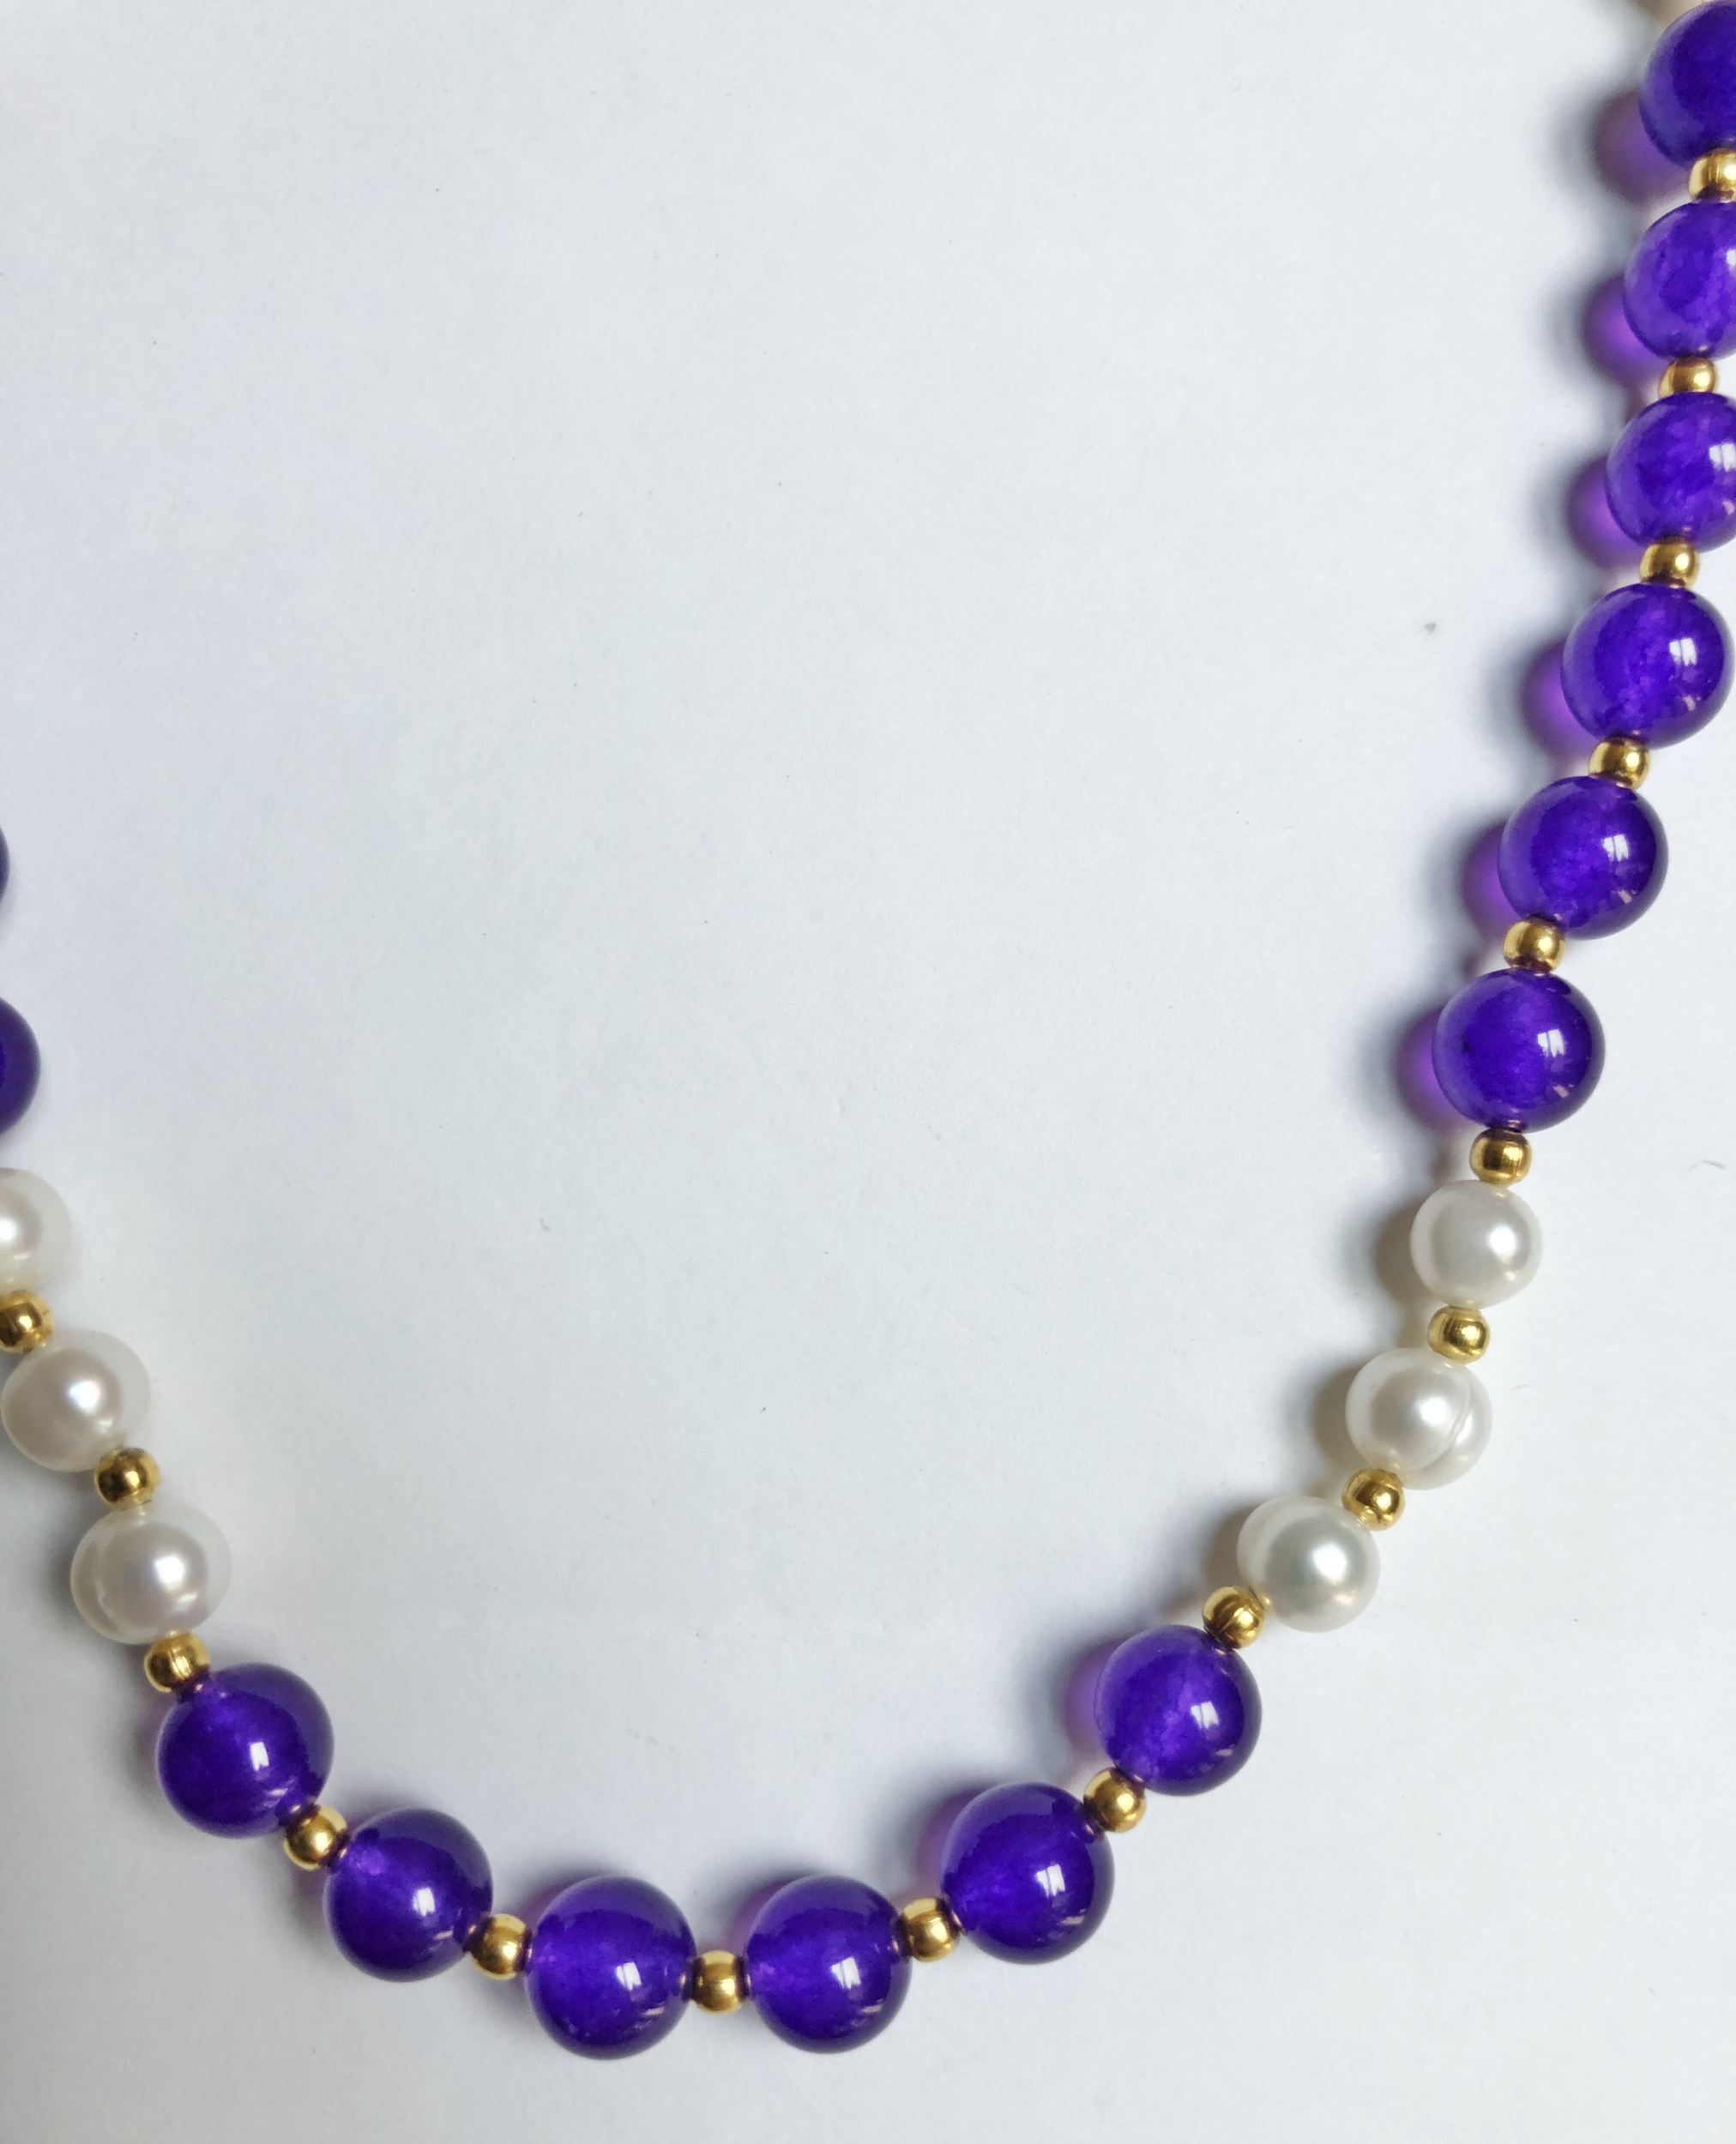 Collier perles de culture blanche akoya et amethyste - Angel shop